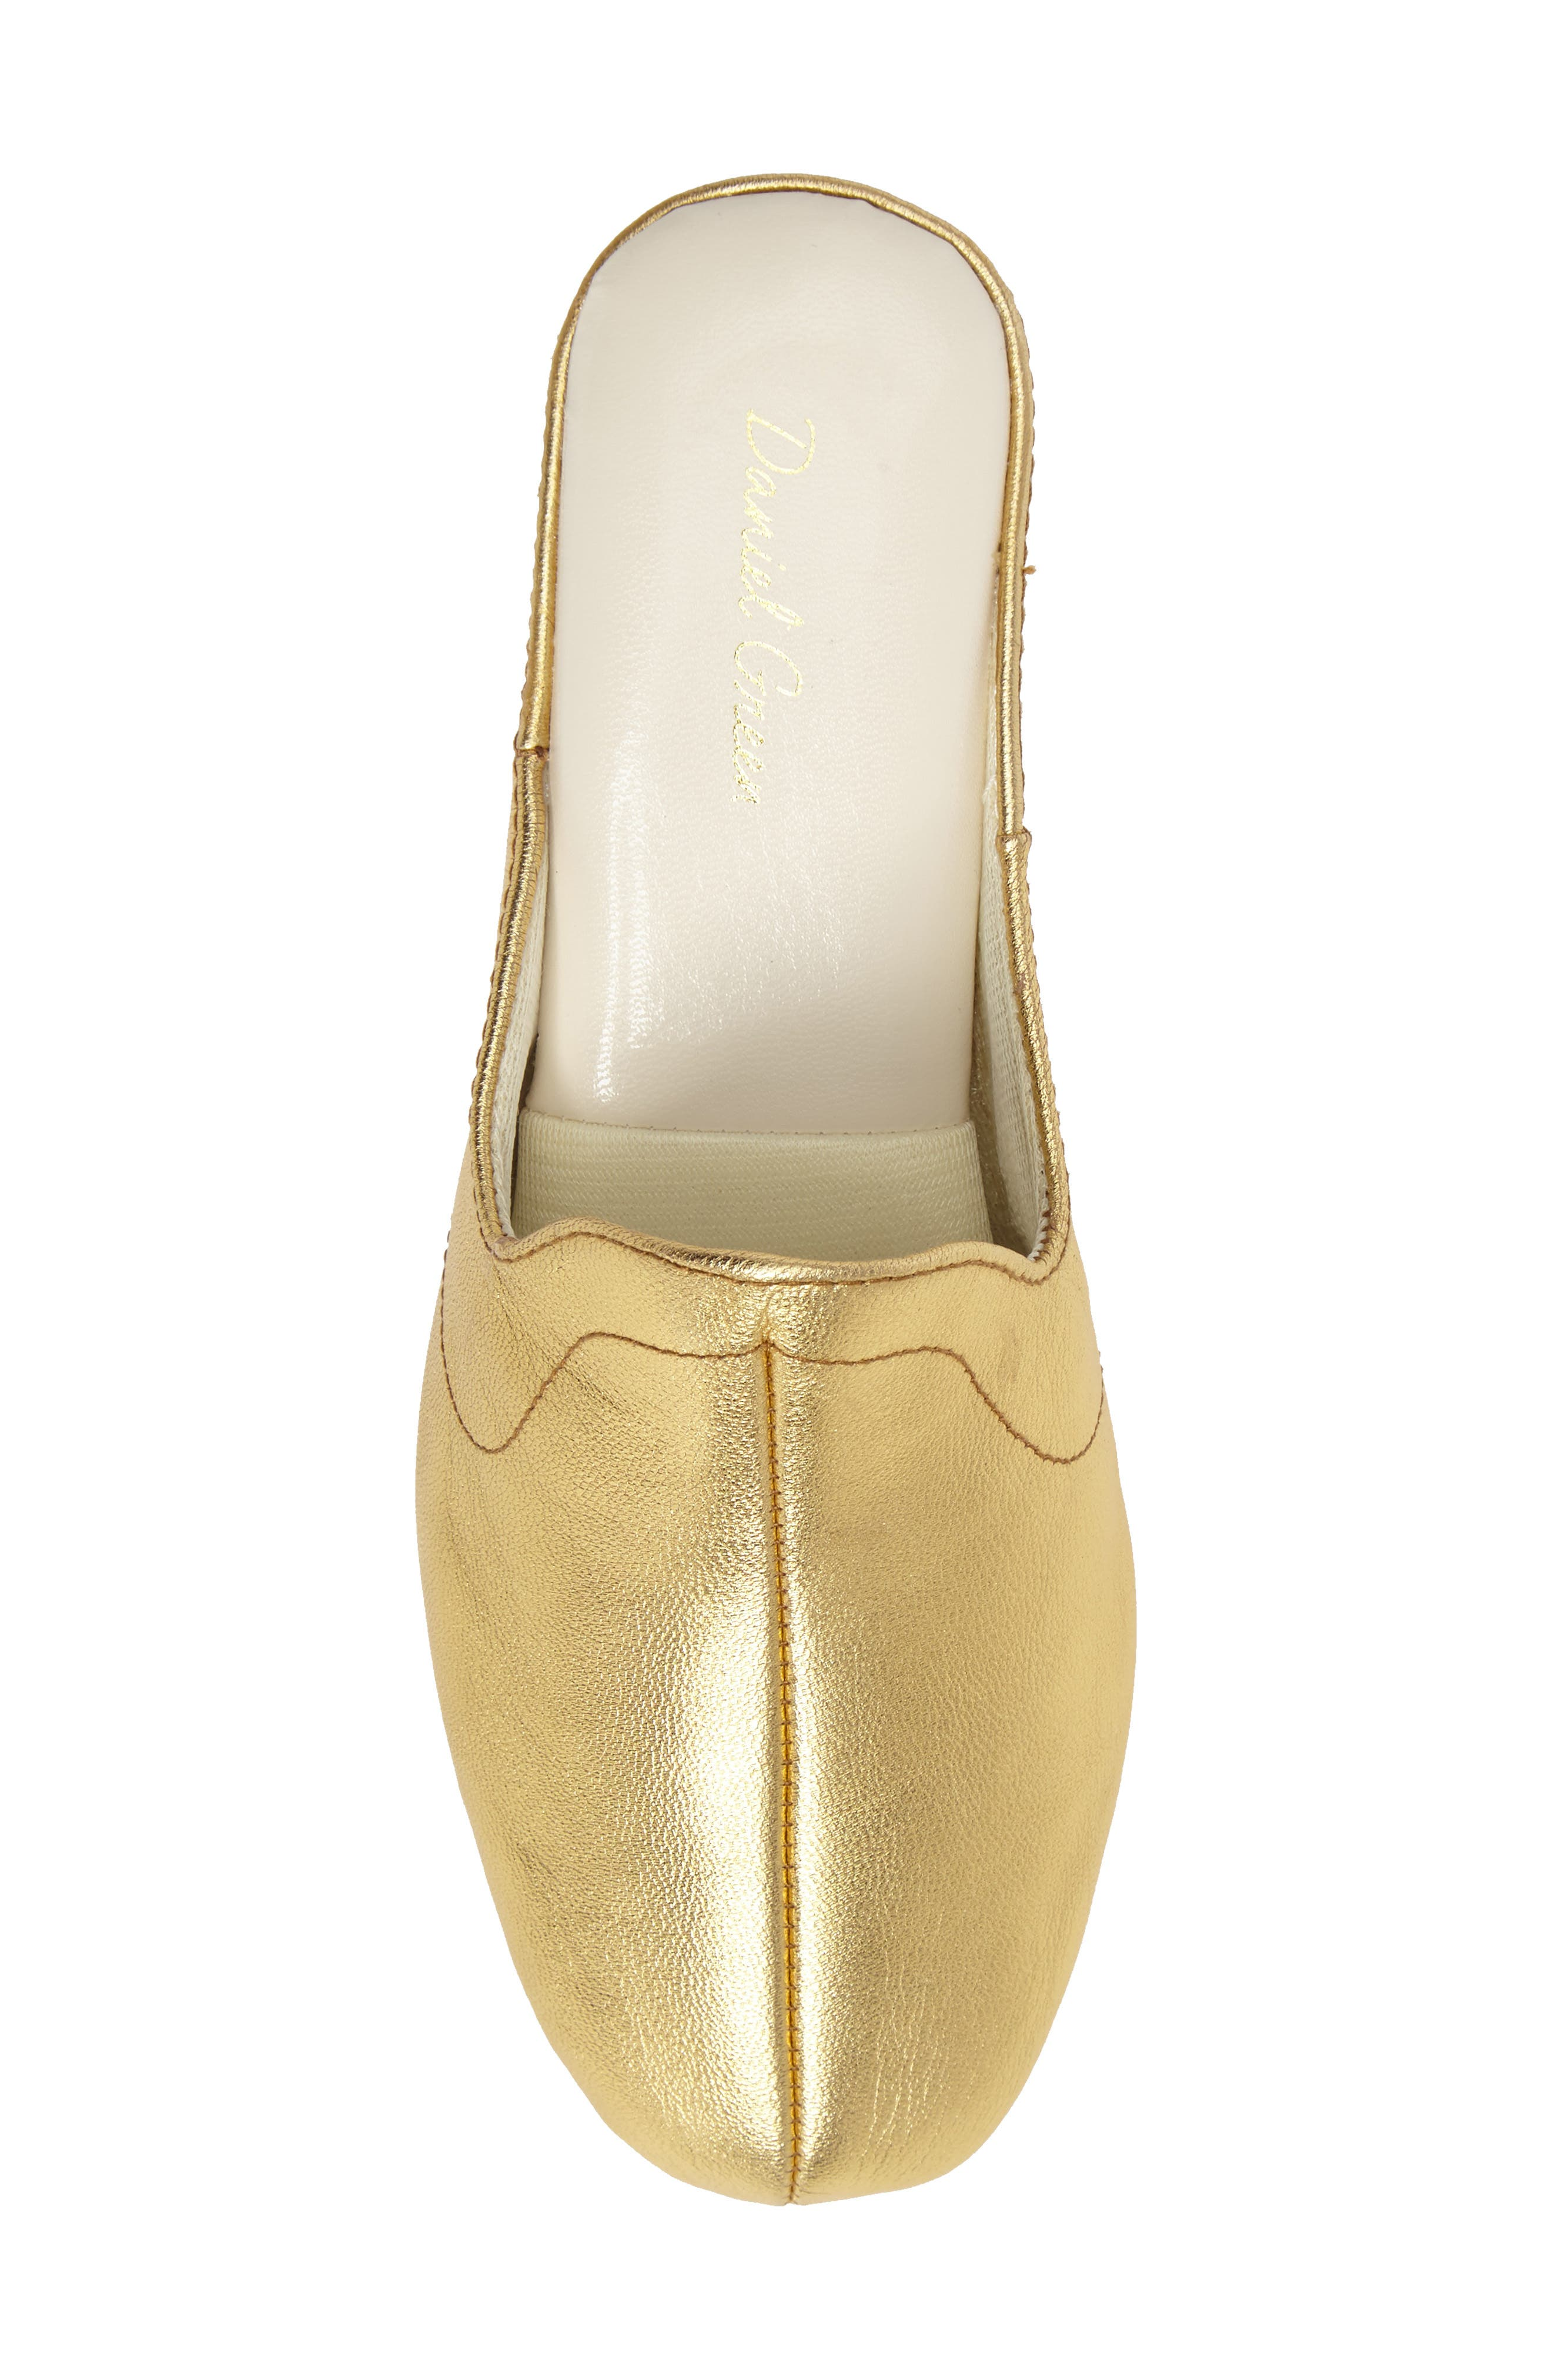 Glamour Scuff Slipper,                             Alternate thumbnail 4, color,                             Gold Leather